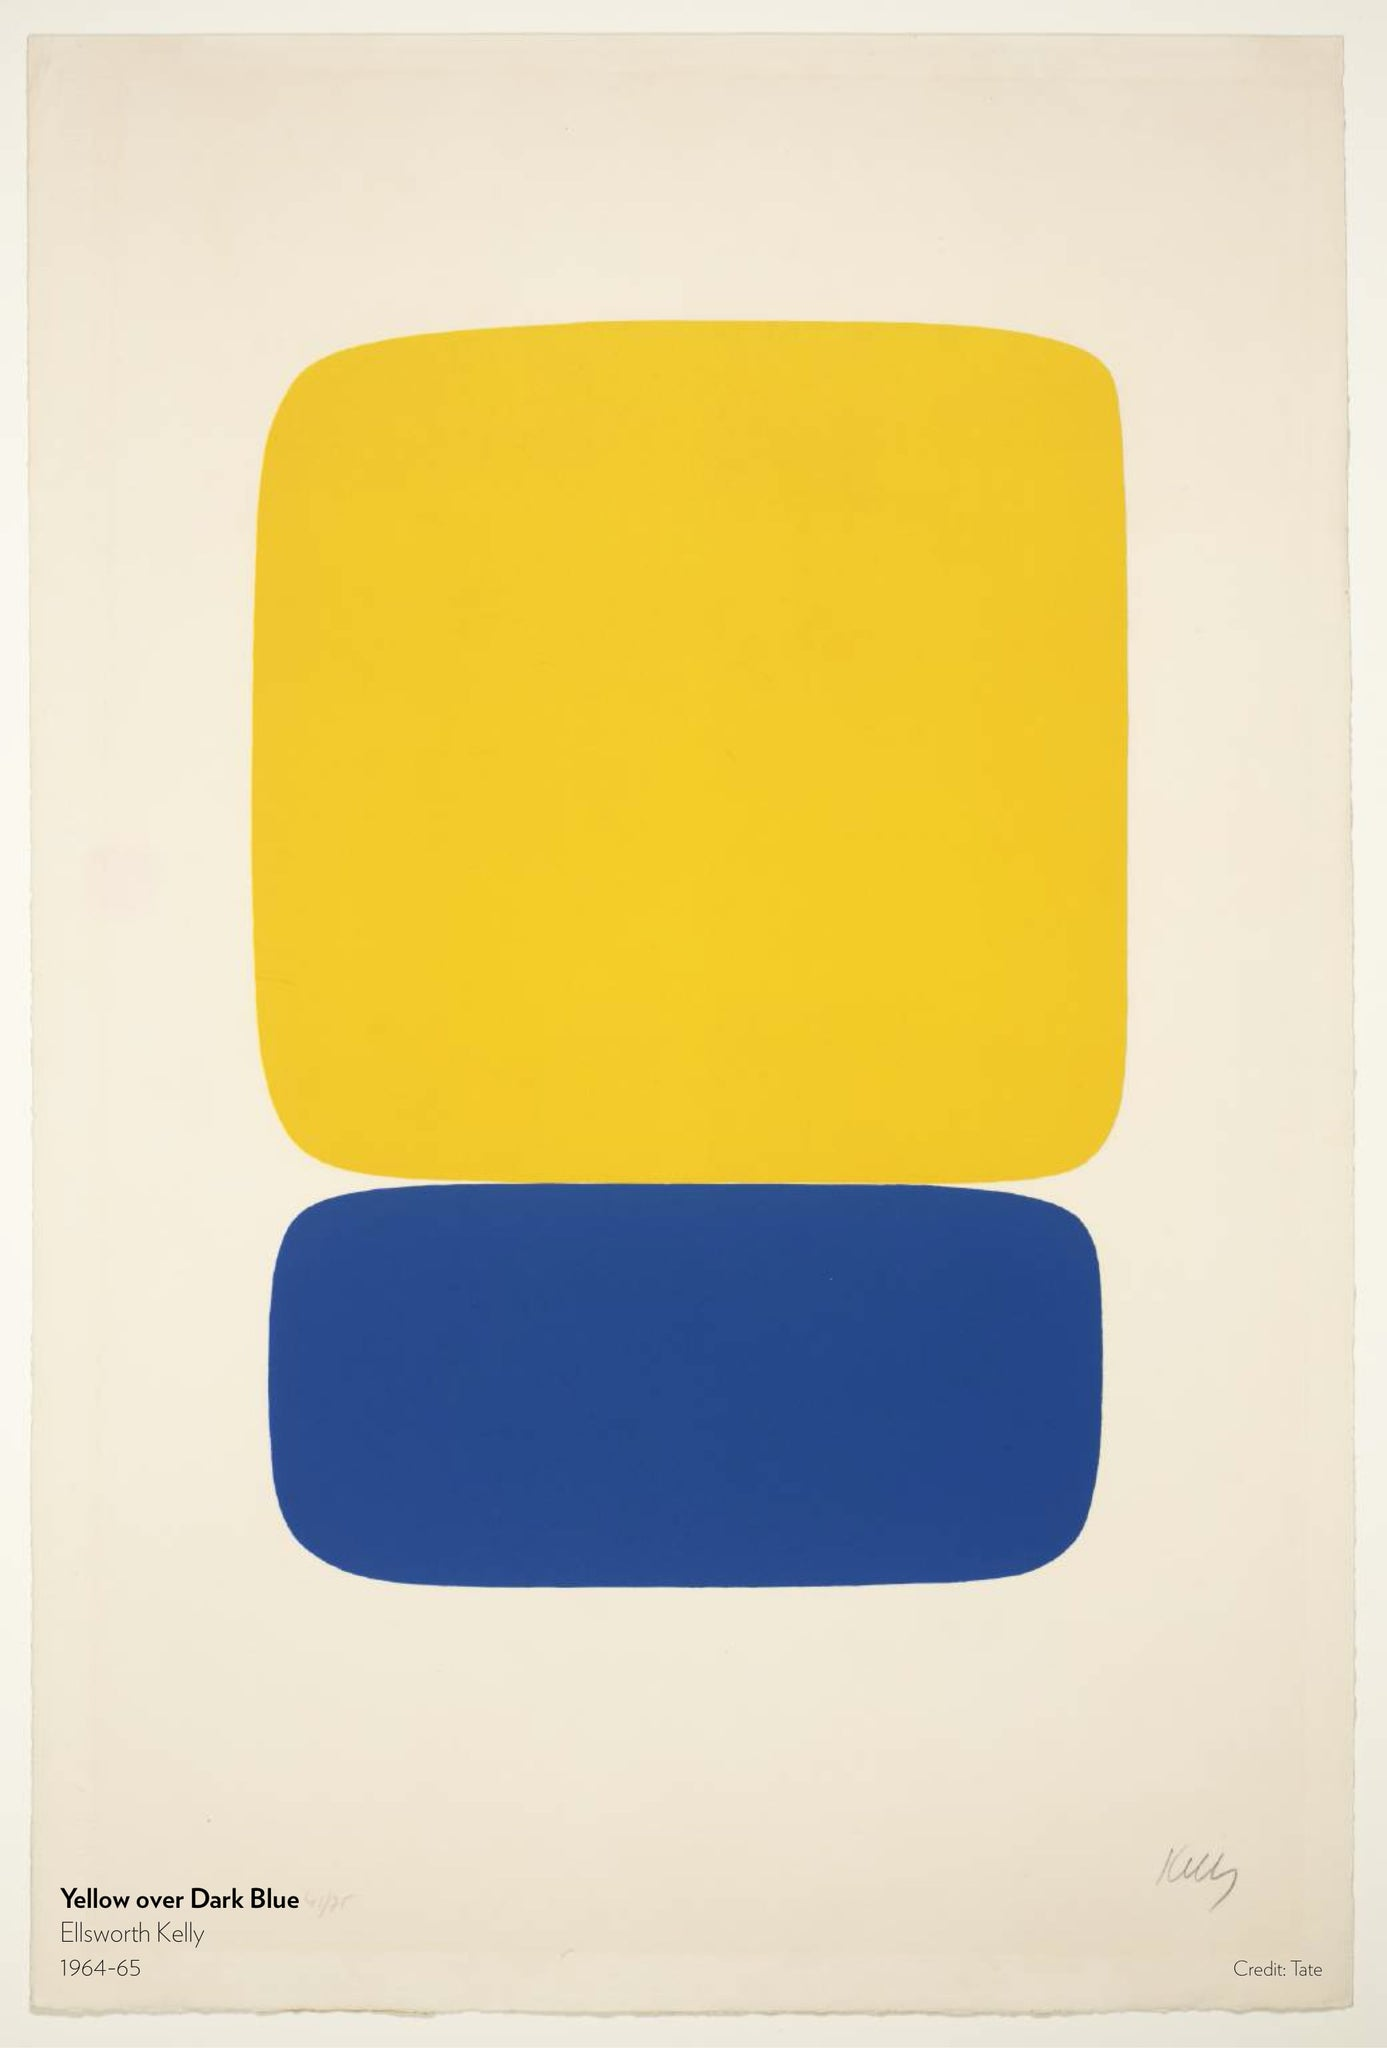 Yellow over Dark Blue. Painting by Ellsworth Kelly, 1964 to 1965.